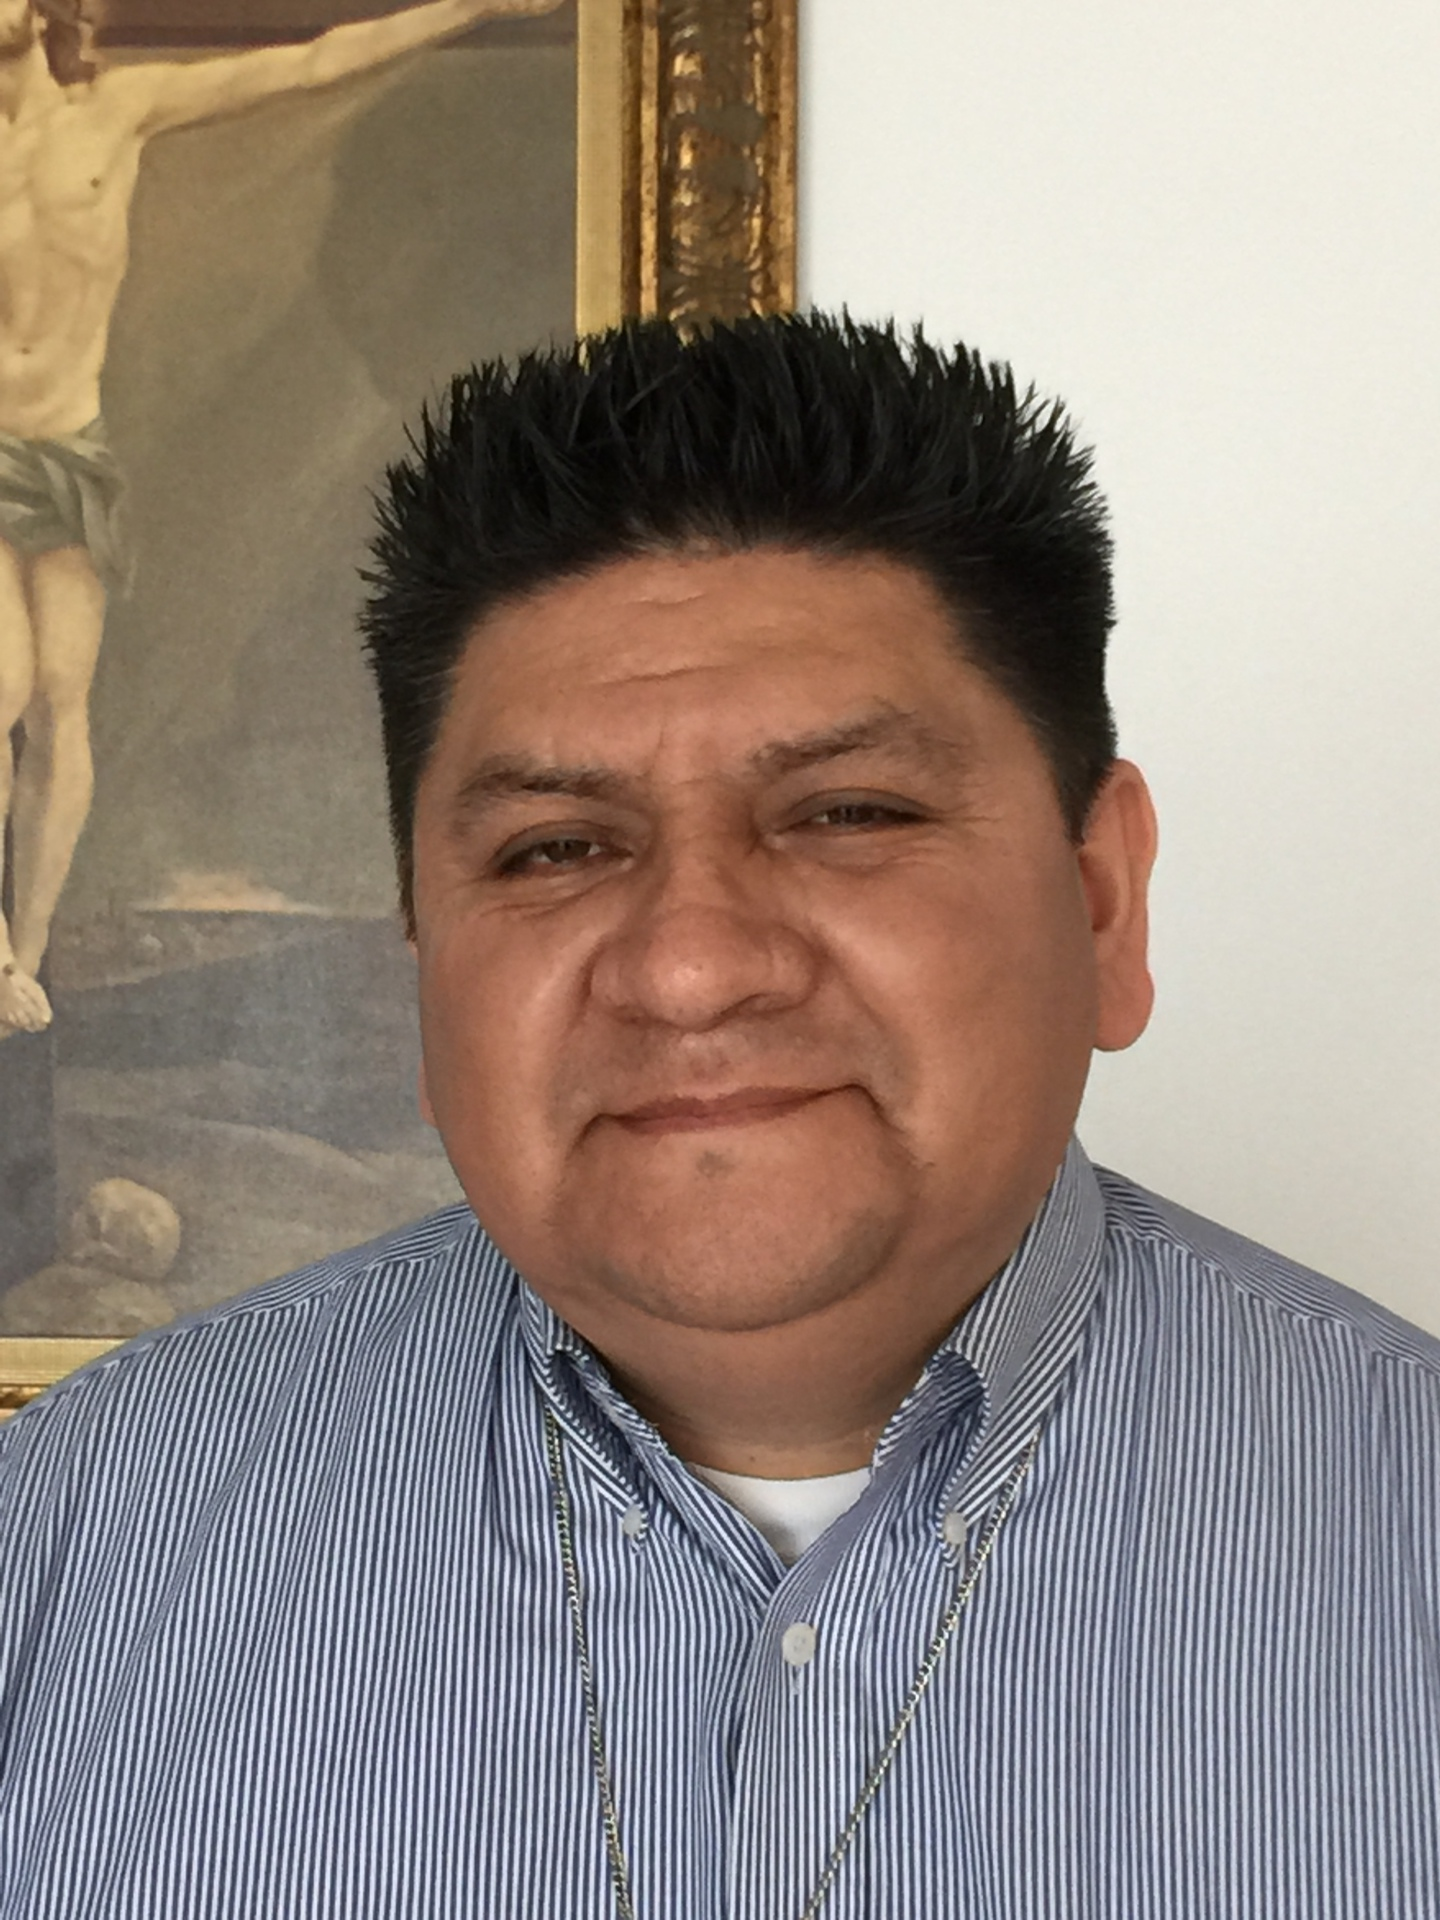 Rev. Mr. Jorge Ochoa